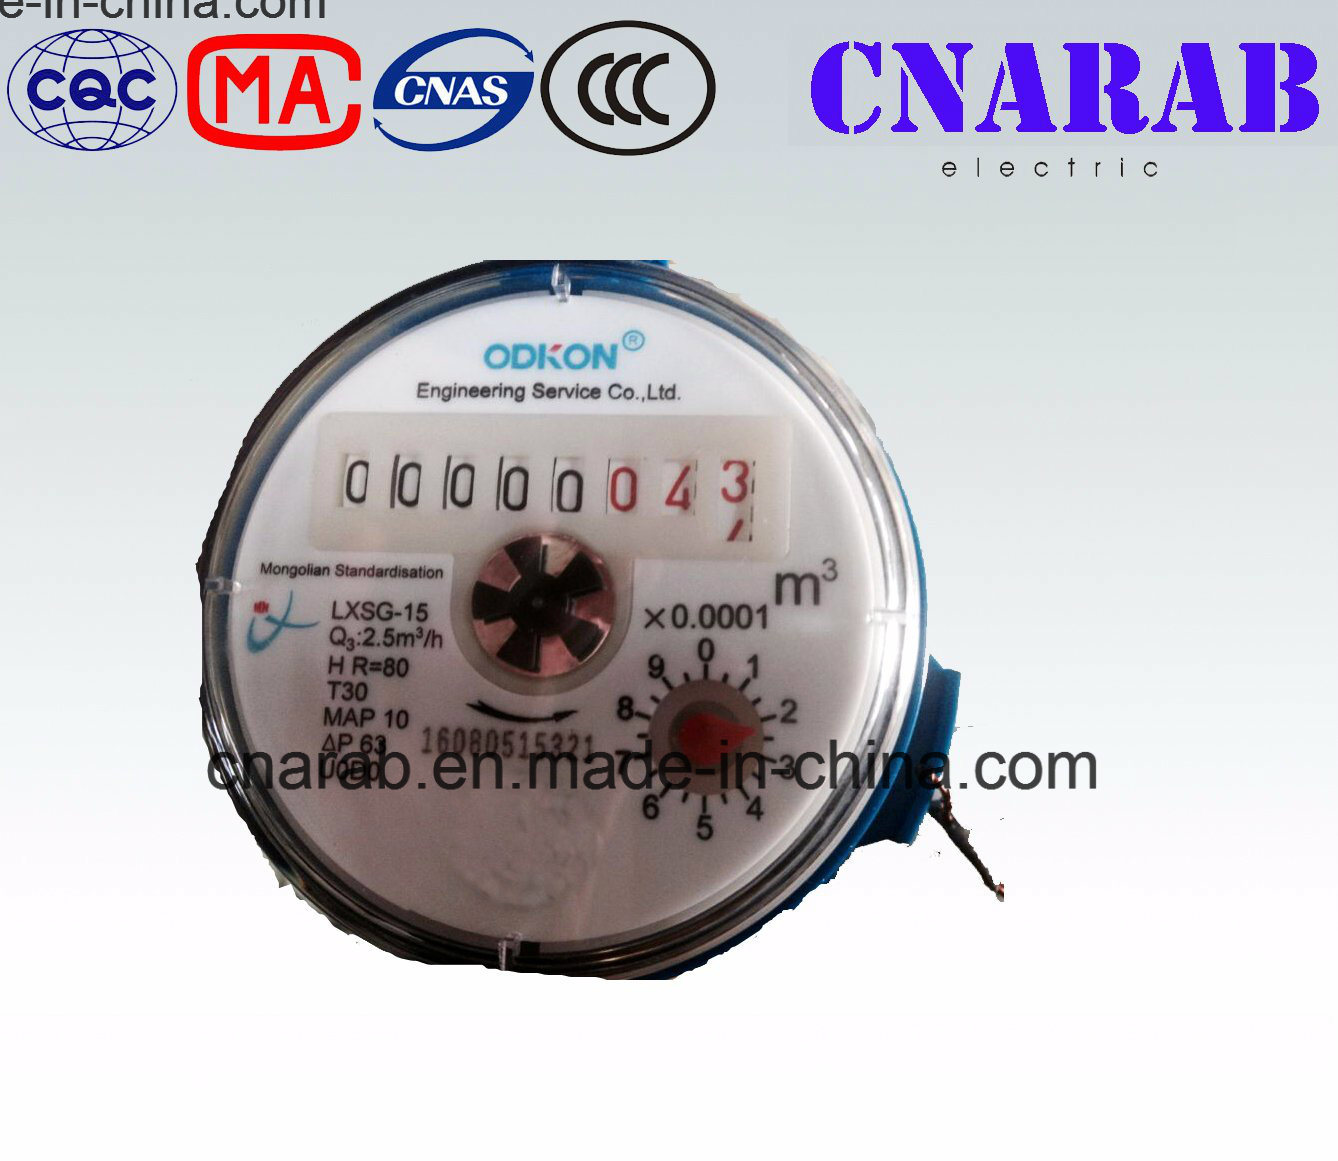 Odkon Single Jet Cold Water Meter